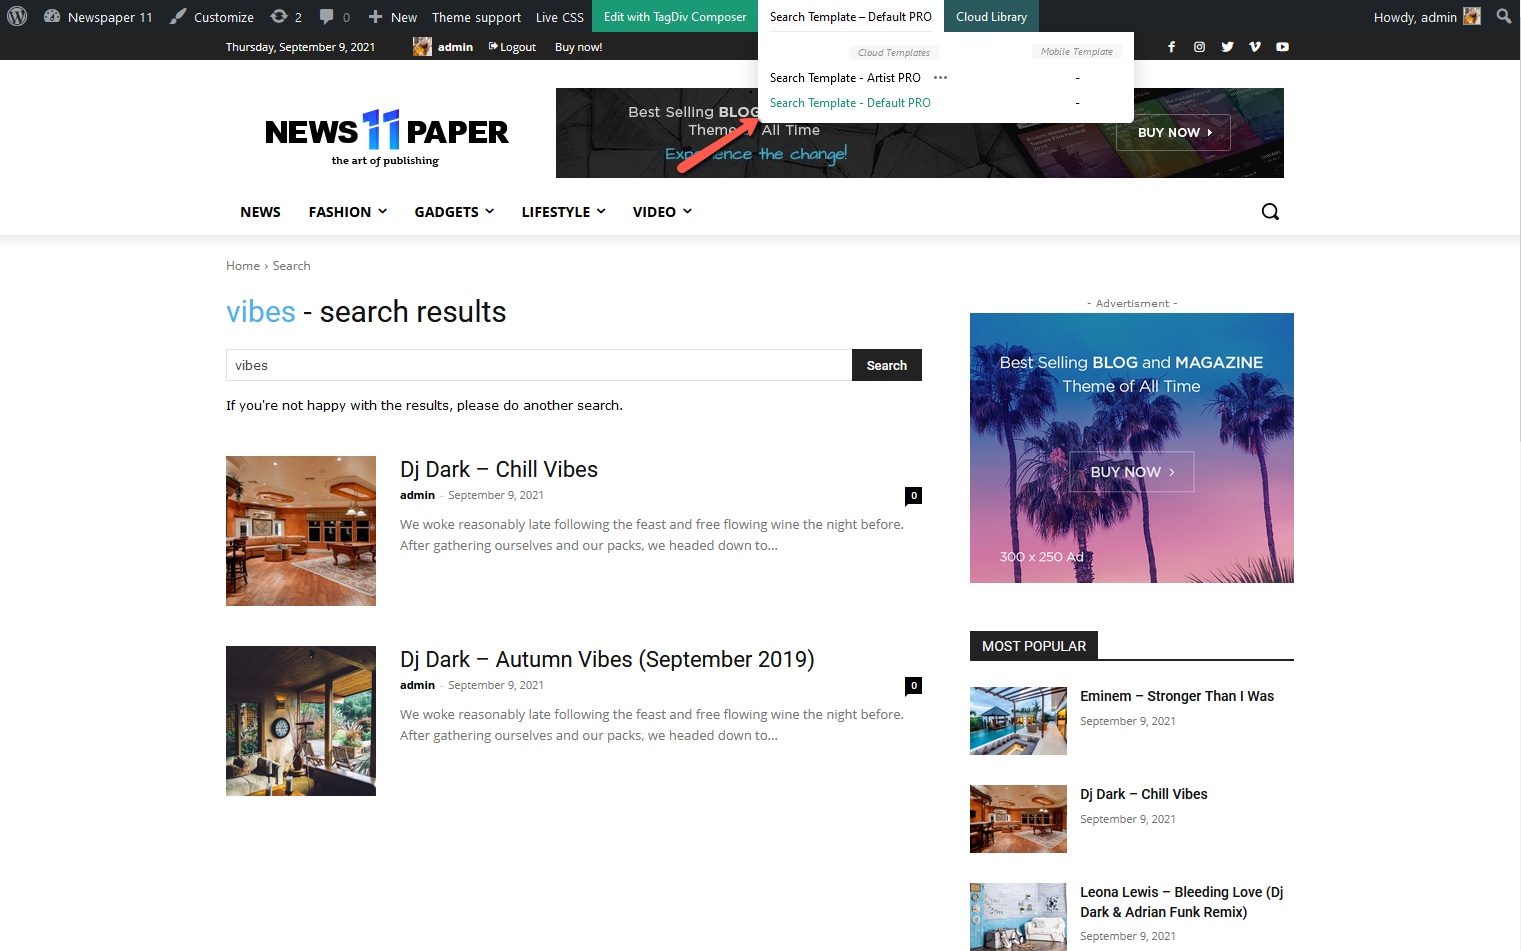 How to set the Search Template